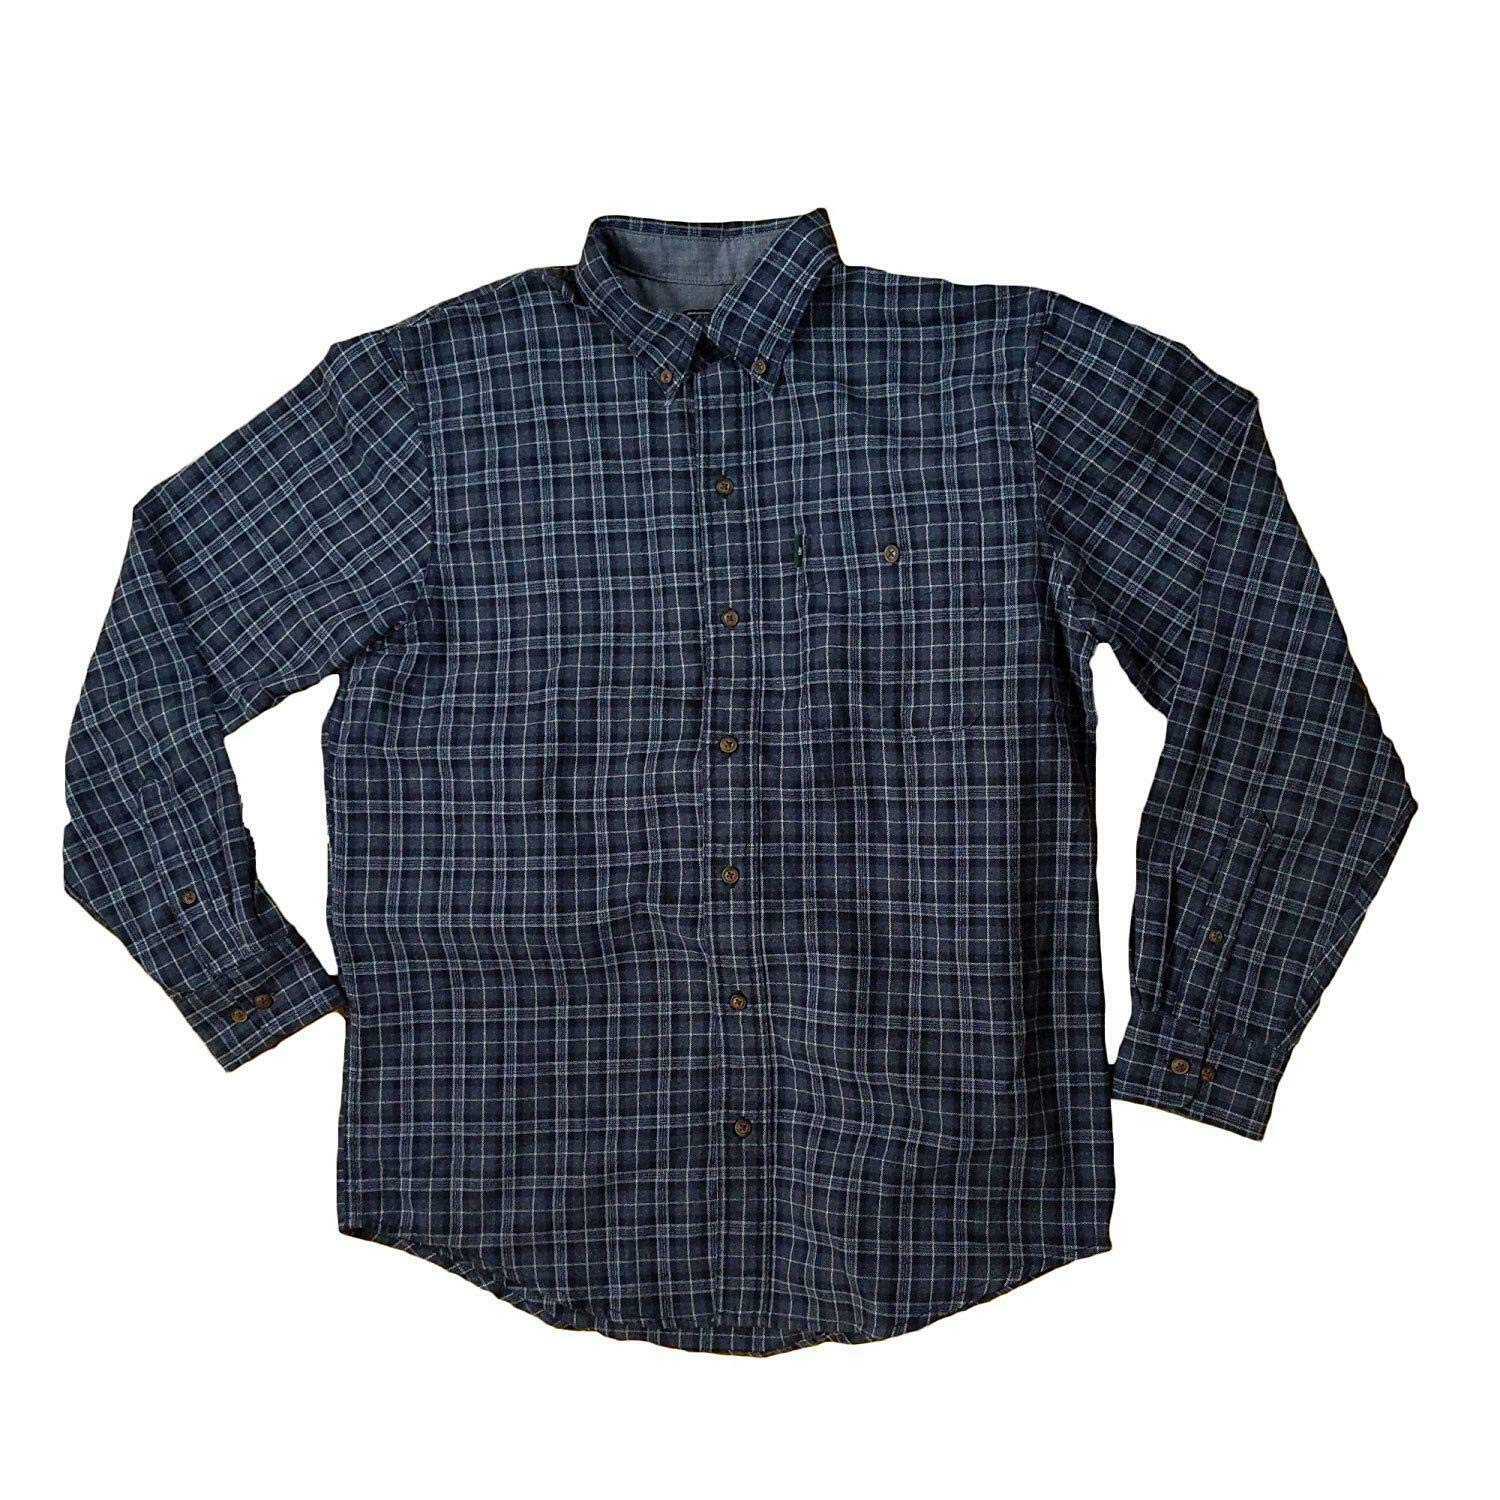 Bass /& Co G.H Mens Fireside Flannel Long Sleeve Button Down Shirt